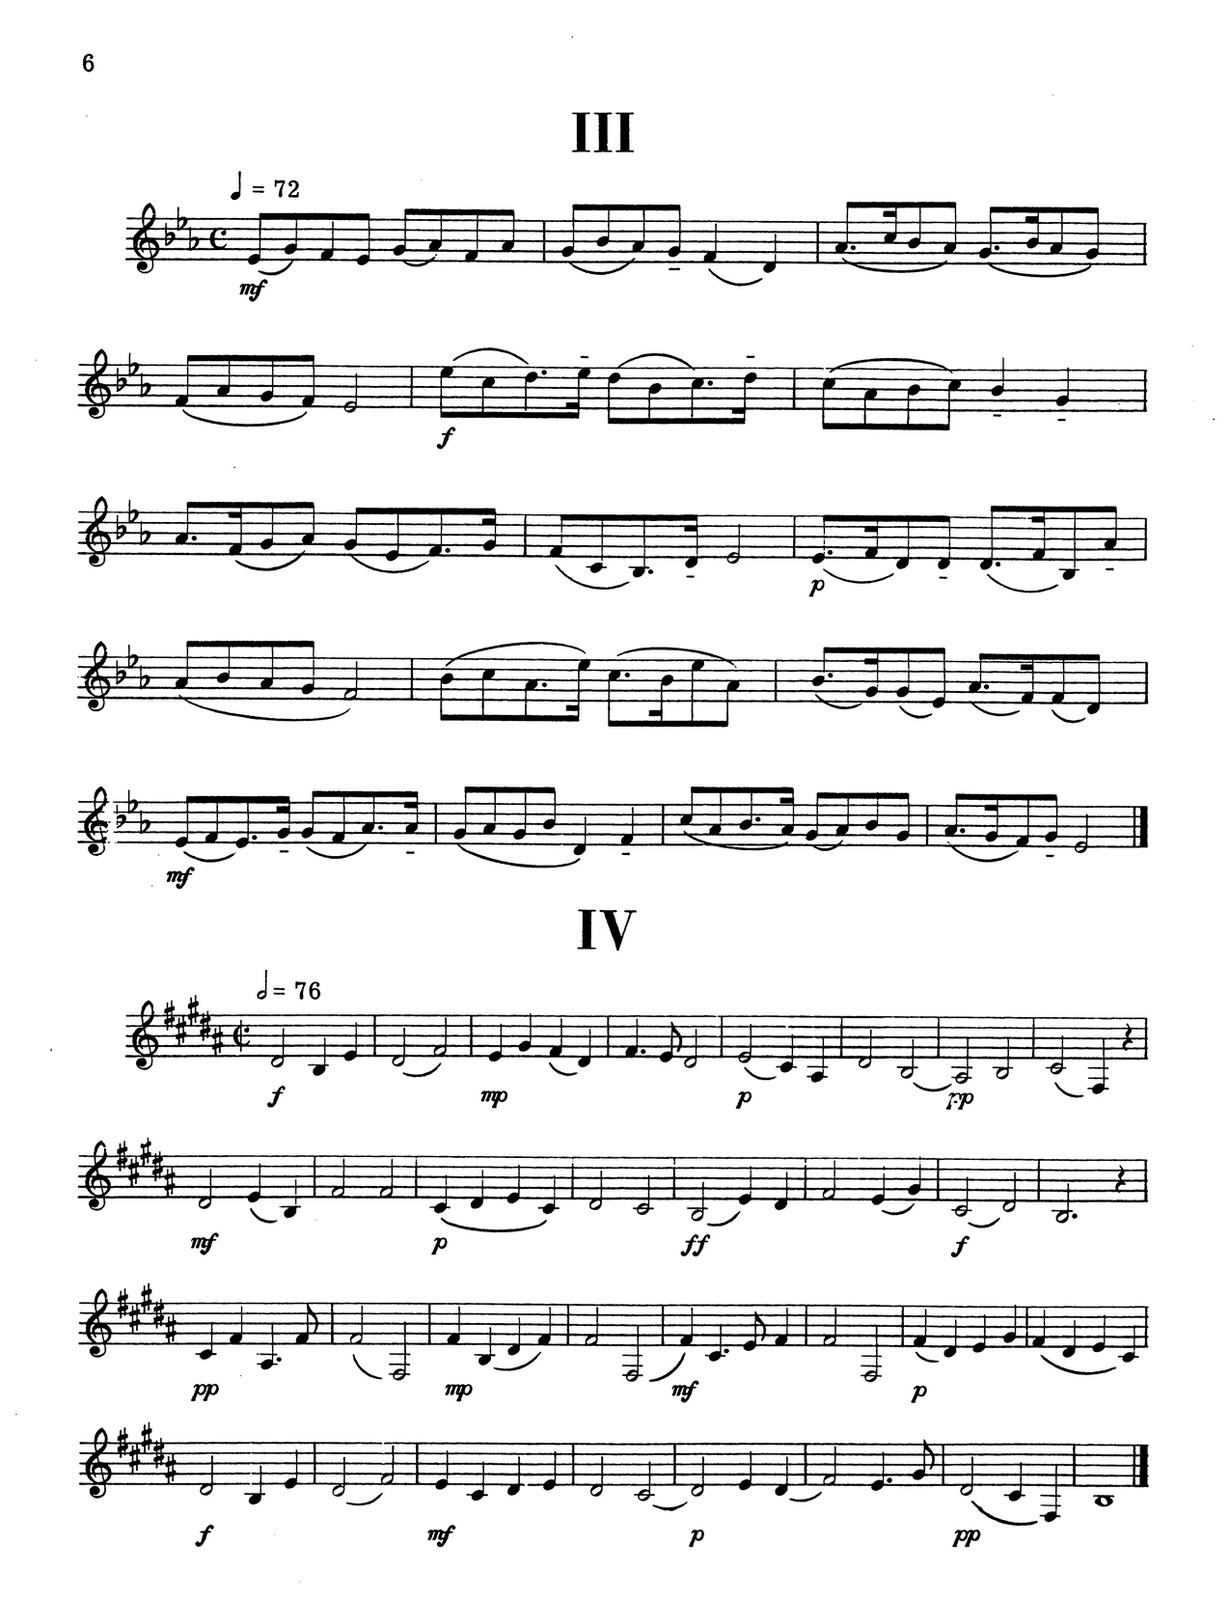 Perrini, Develop Accuracy Through Sight Reading 4